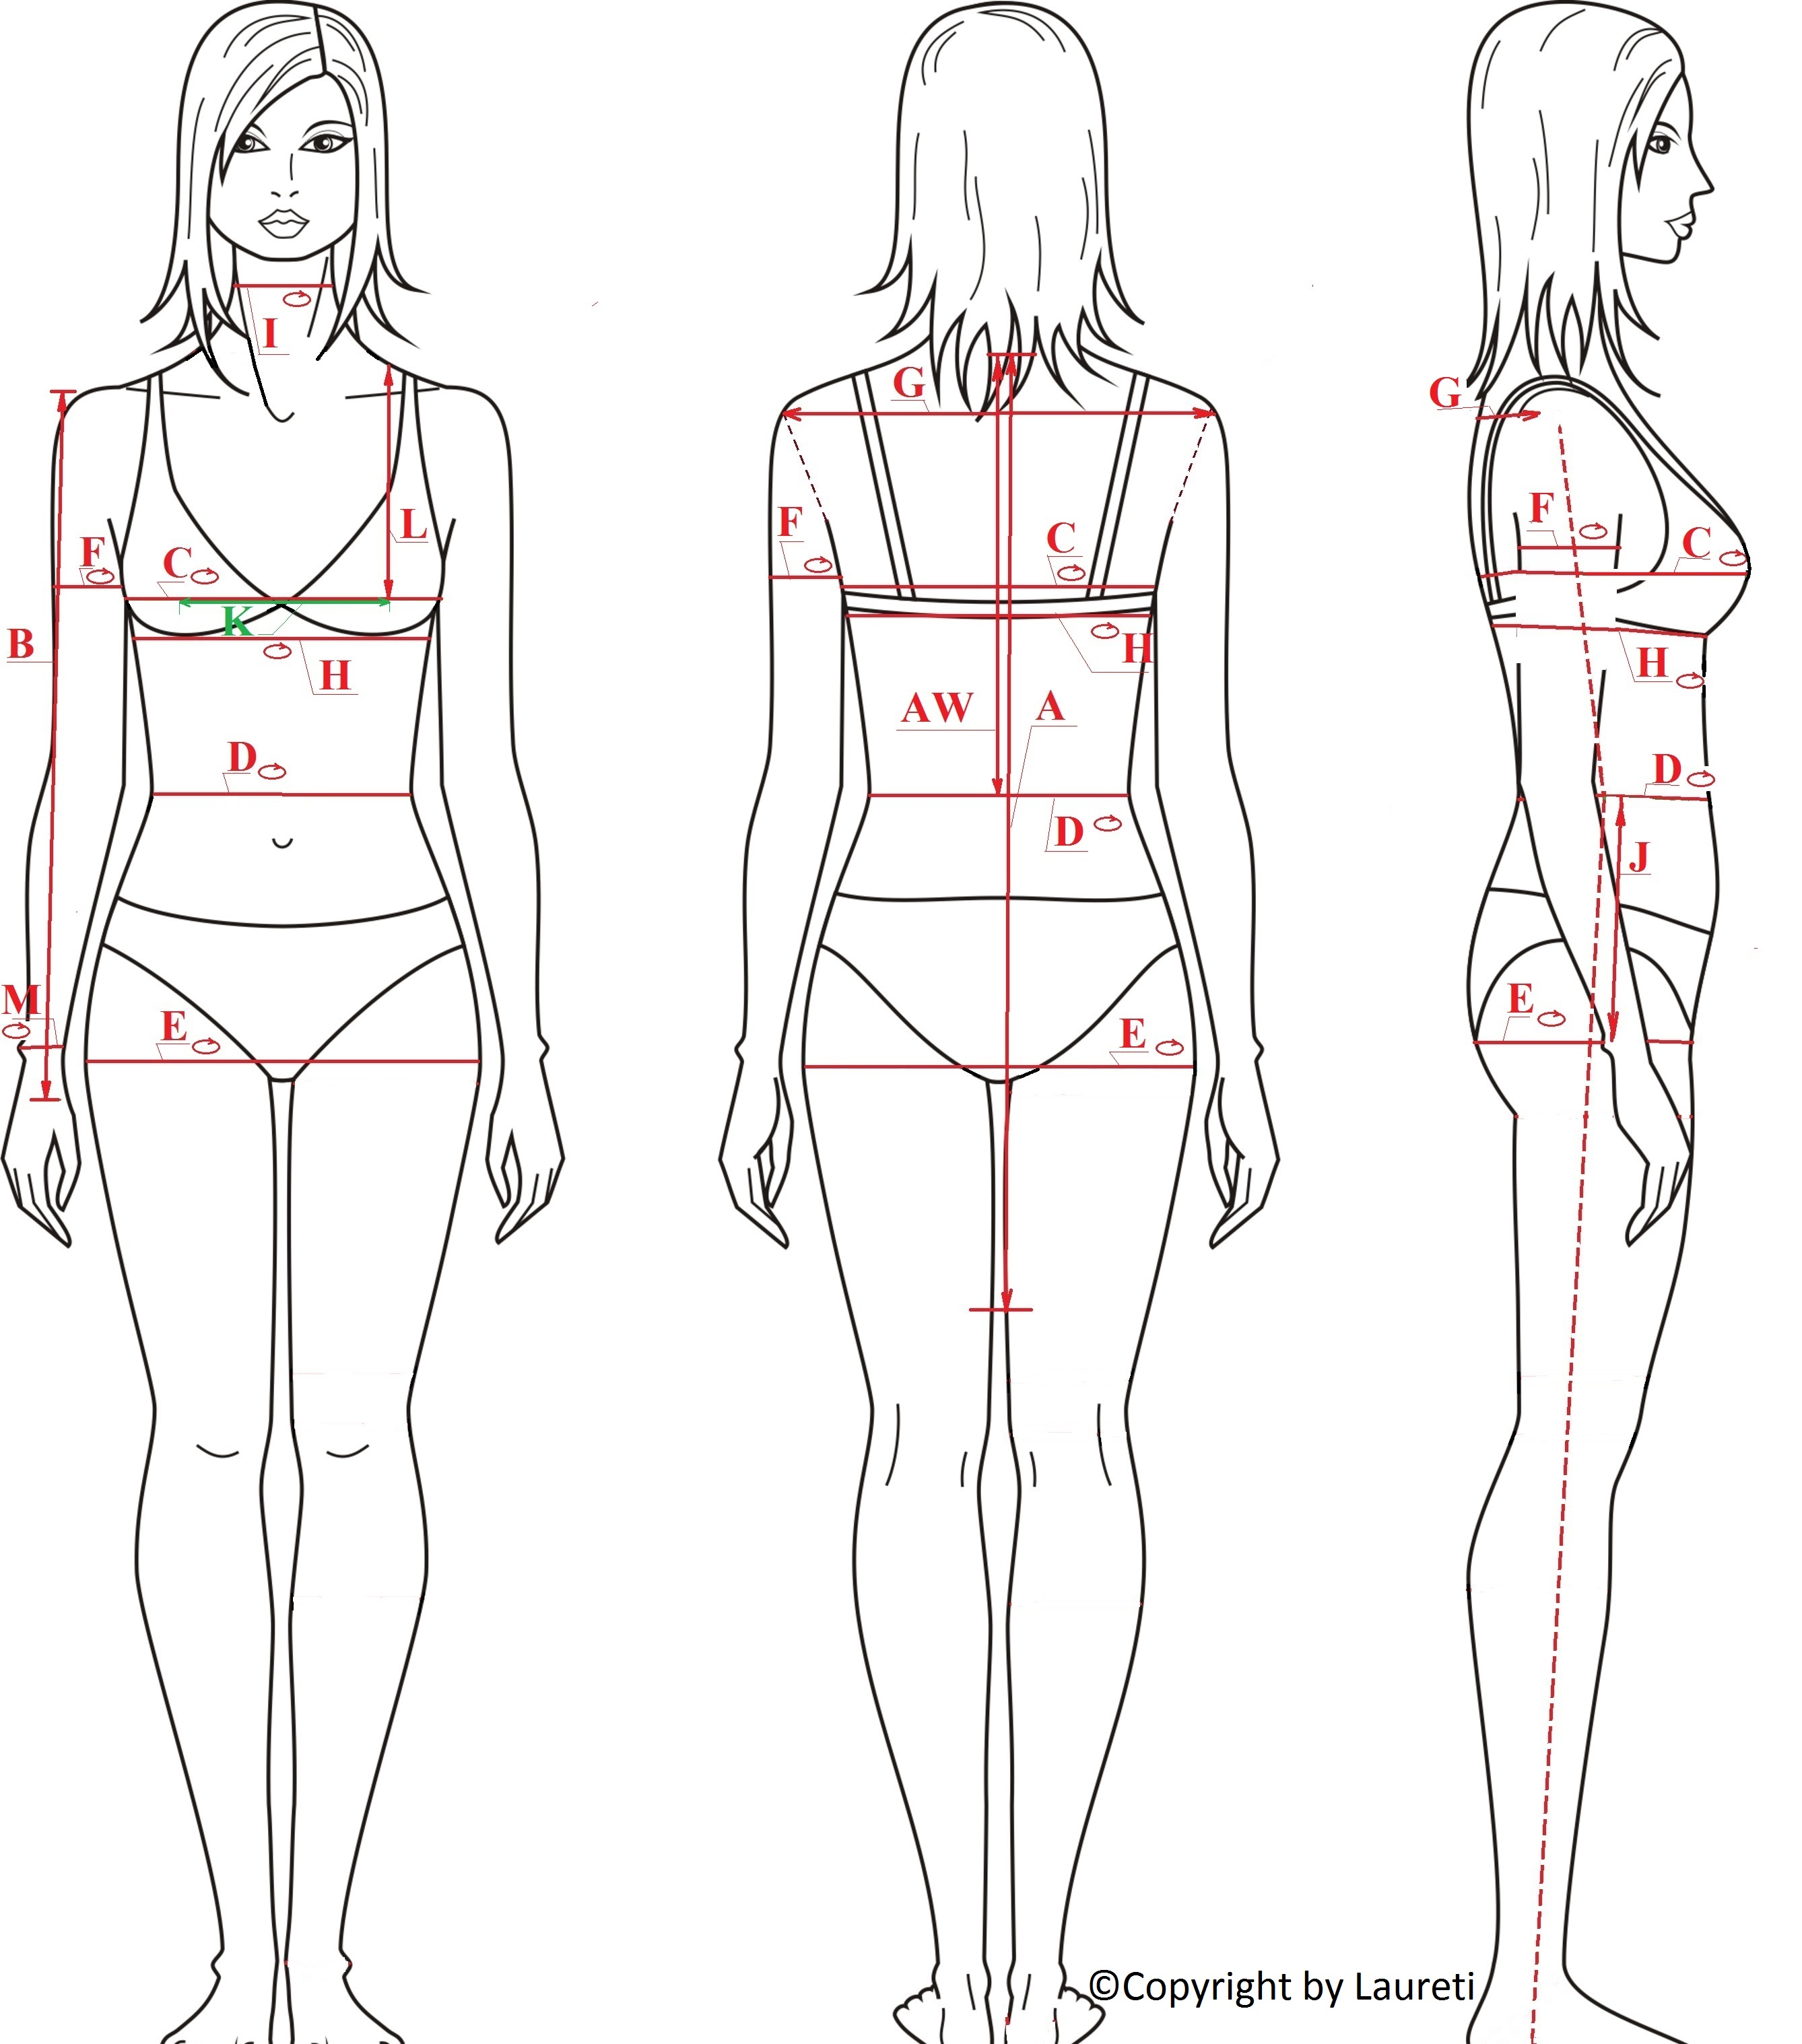 Our women's body measurements charts make online shopping easy for you. pc-ios.tk for Business can ensure consistent sizing for your orders.